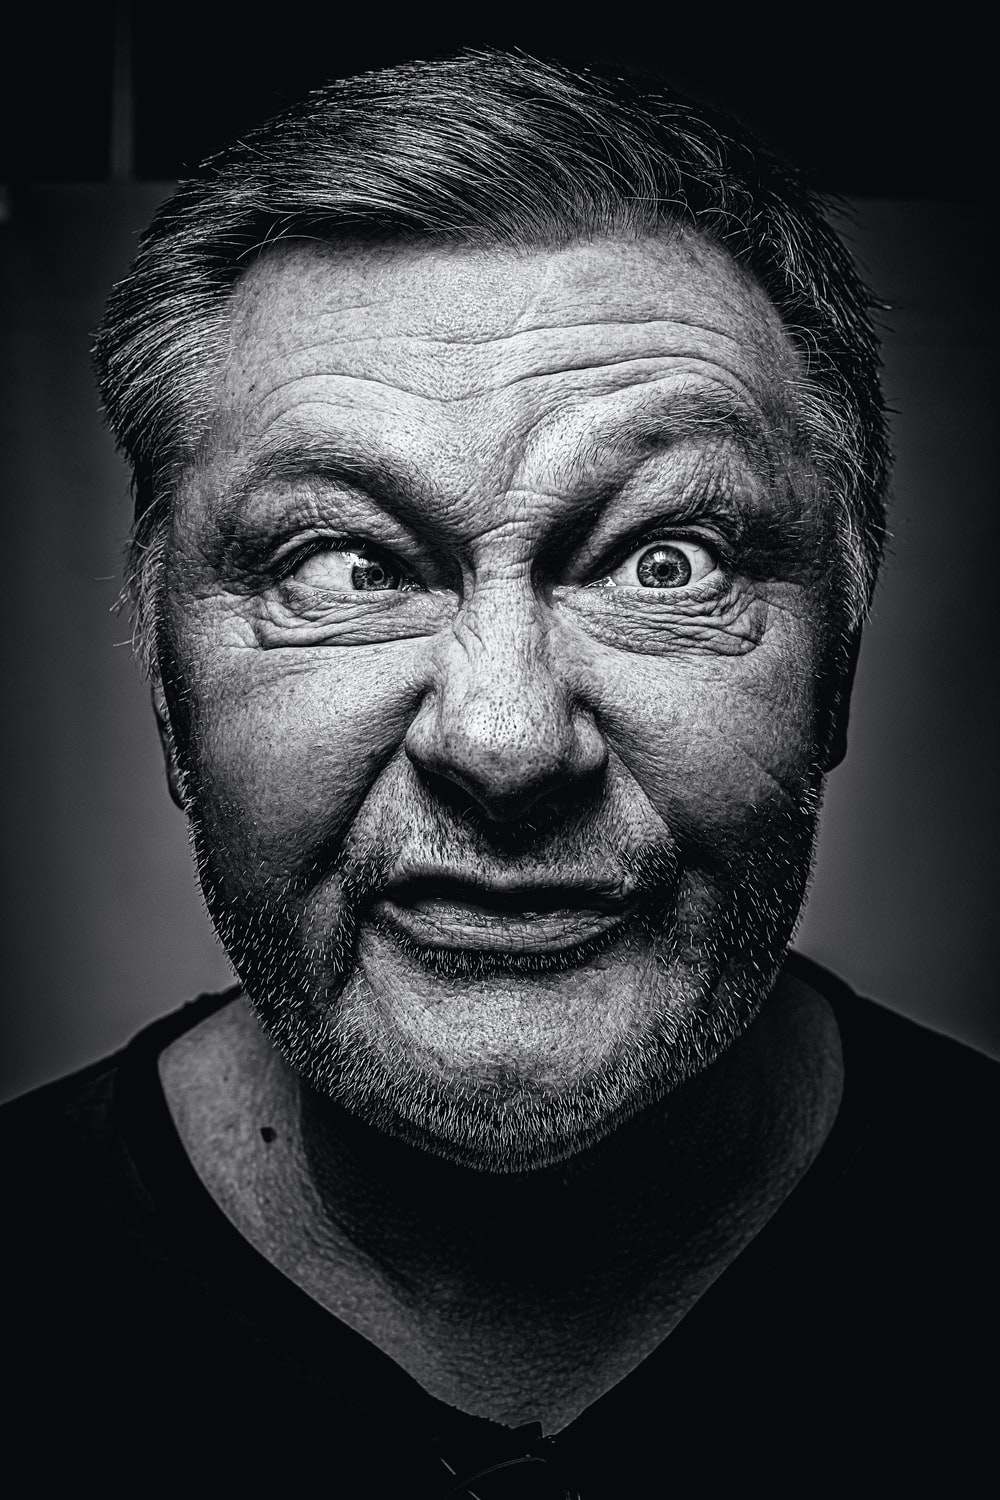 grayscale photography of man making silly face